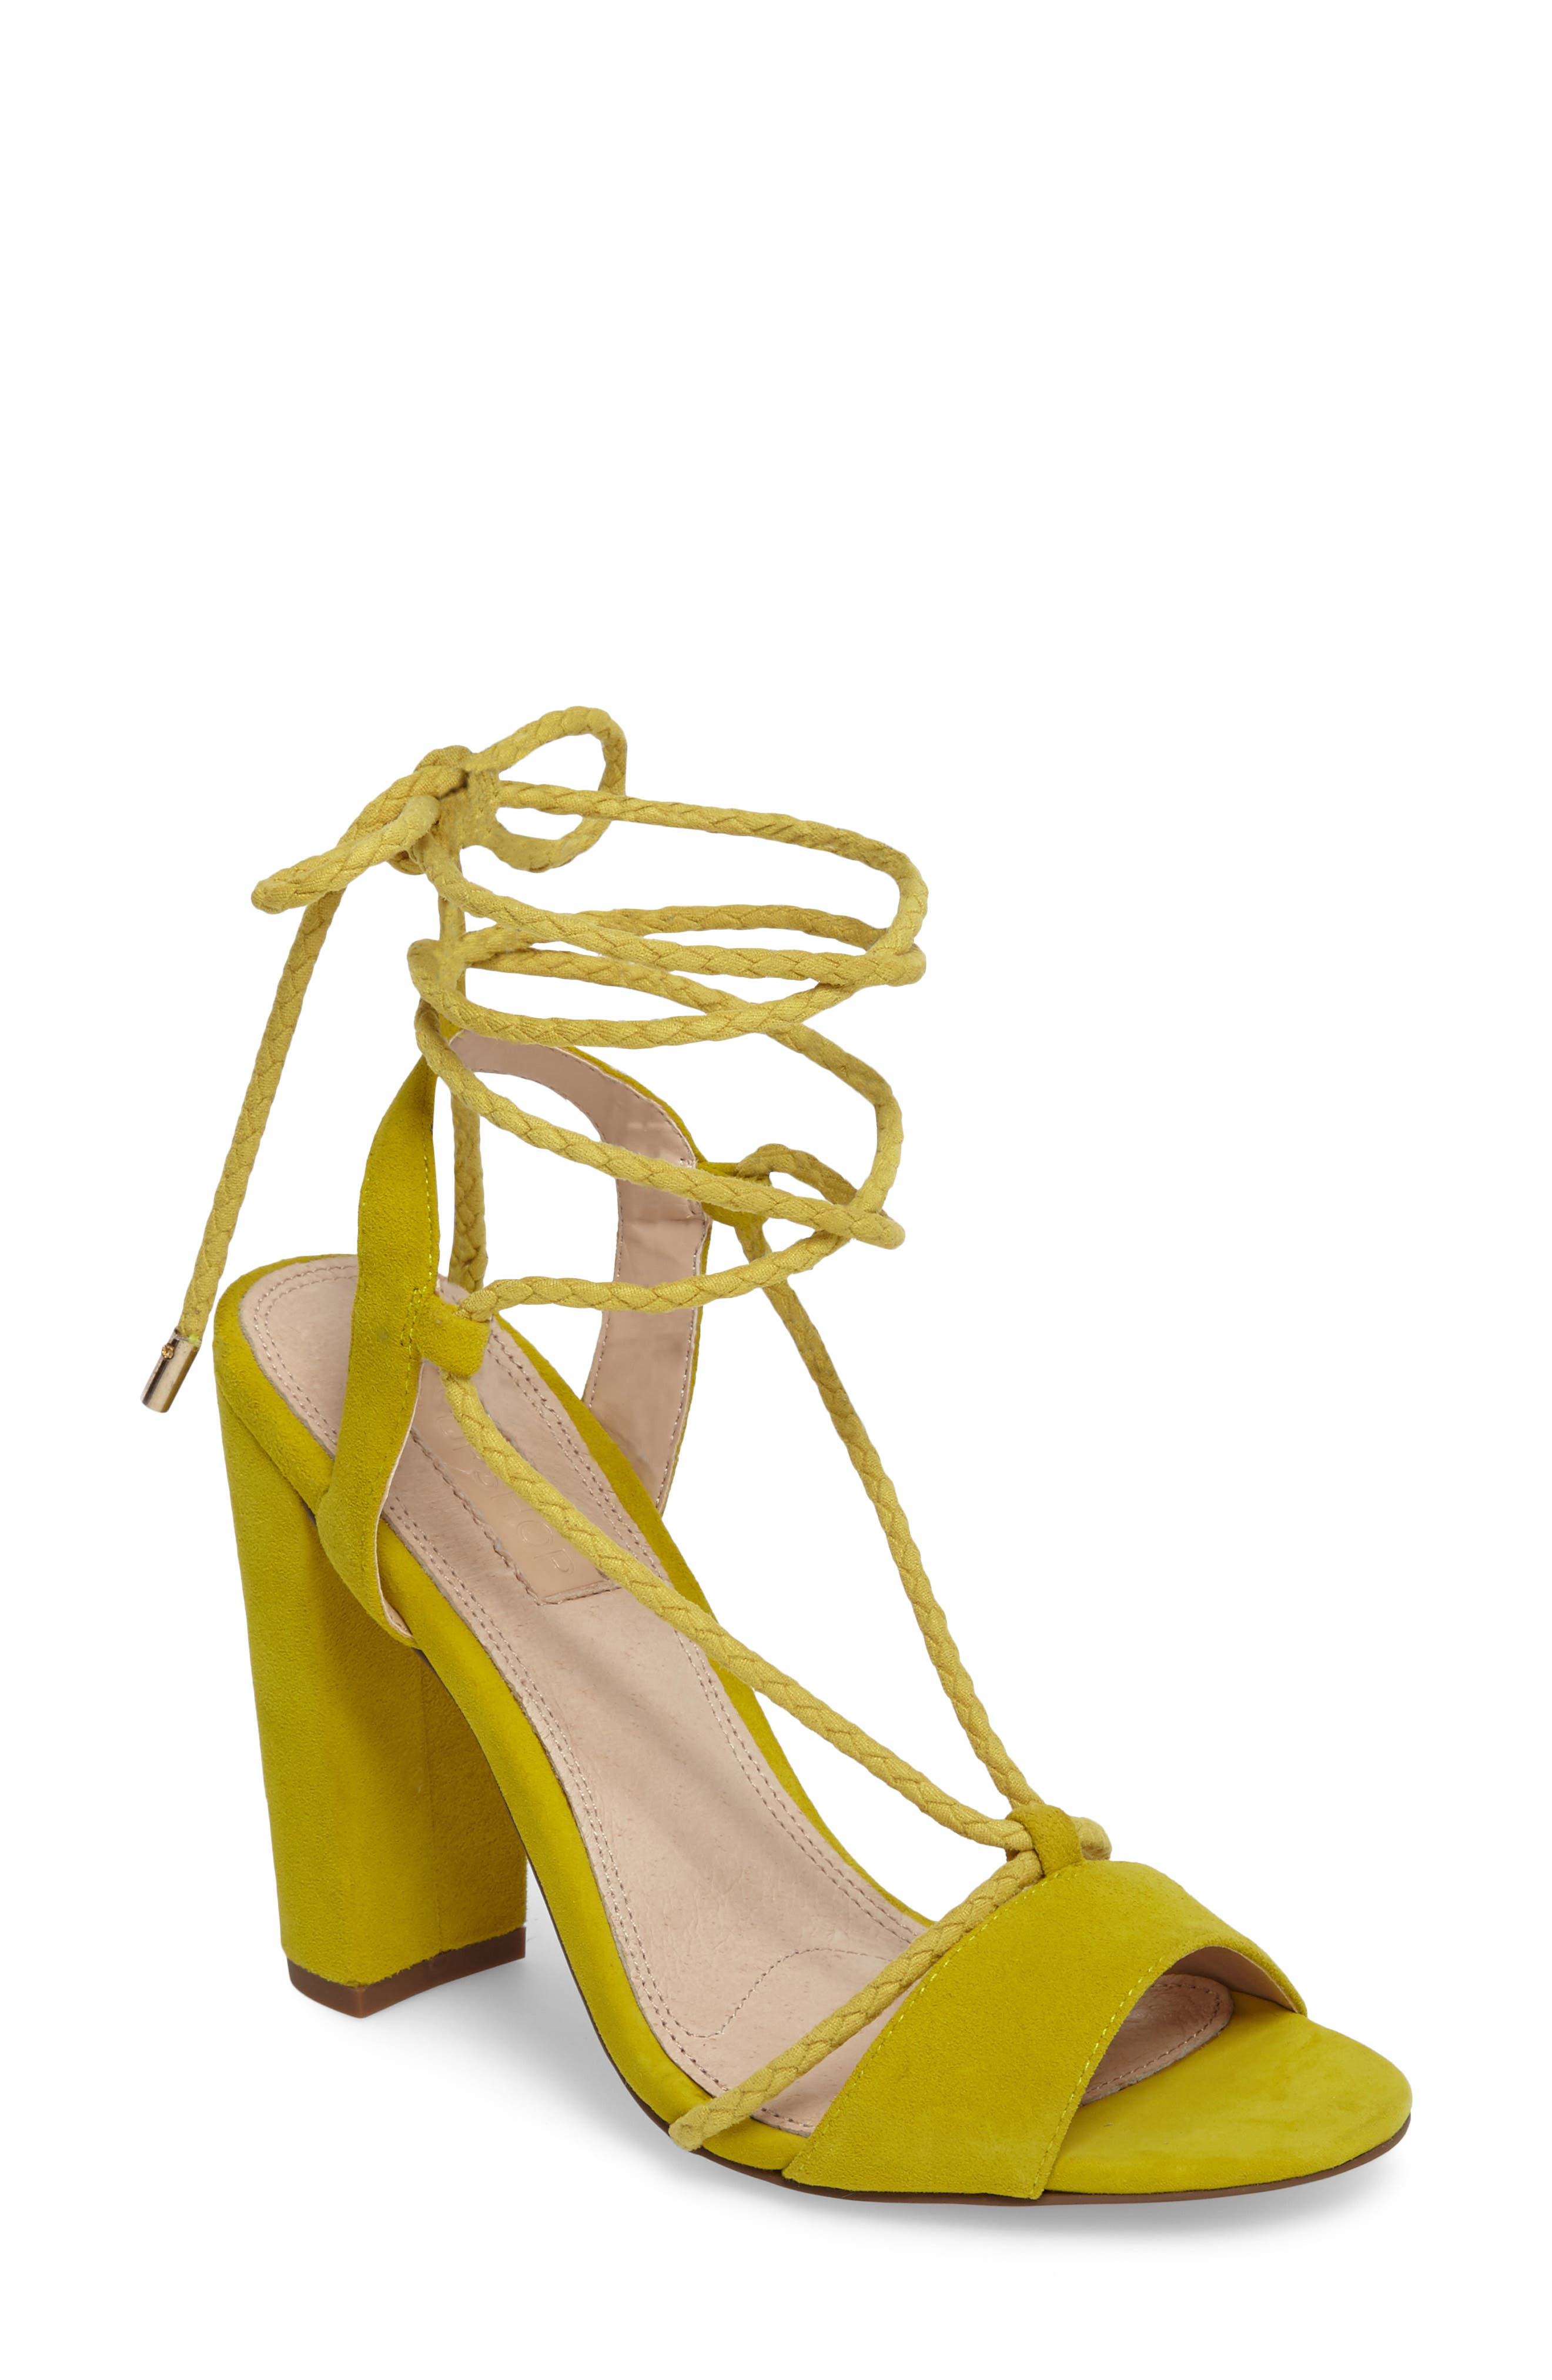 Alternate Image 1 Selected - Topshop Reno Ankle Tie Sandal (Women)